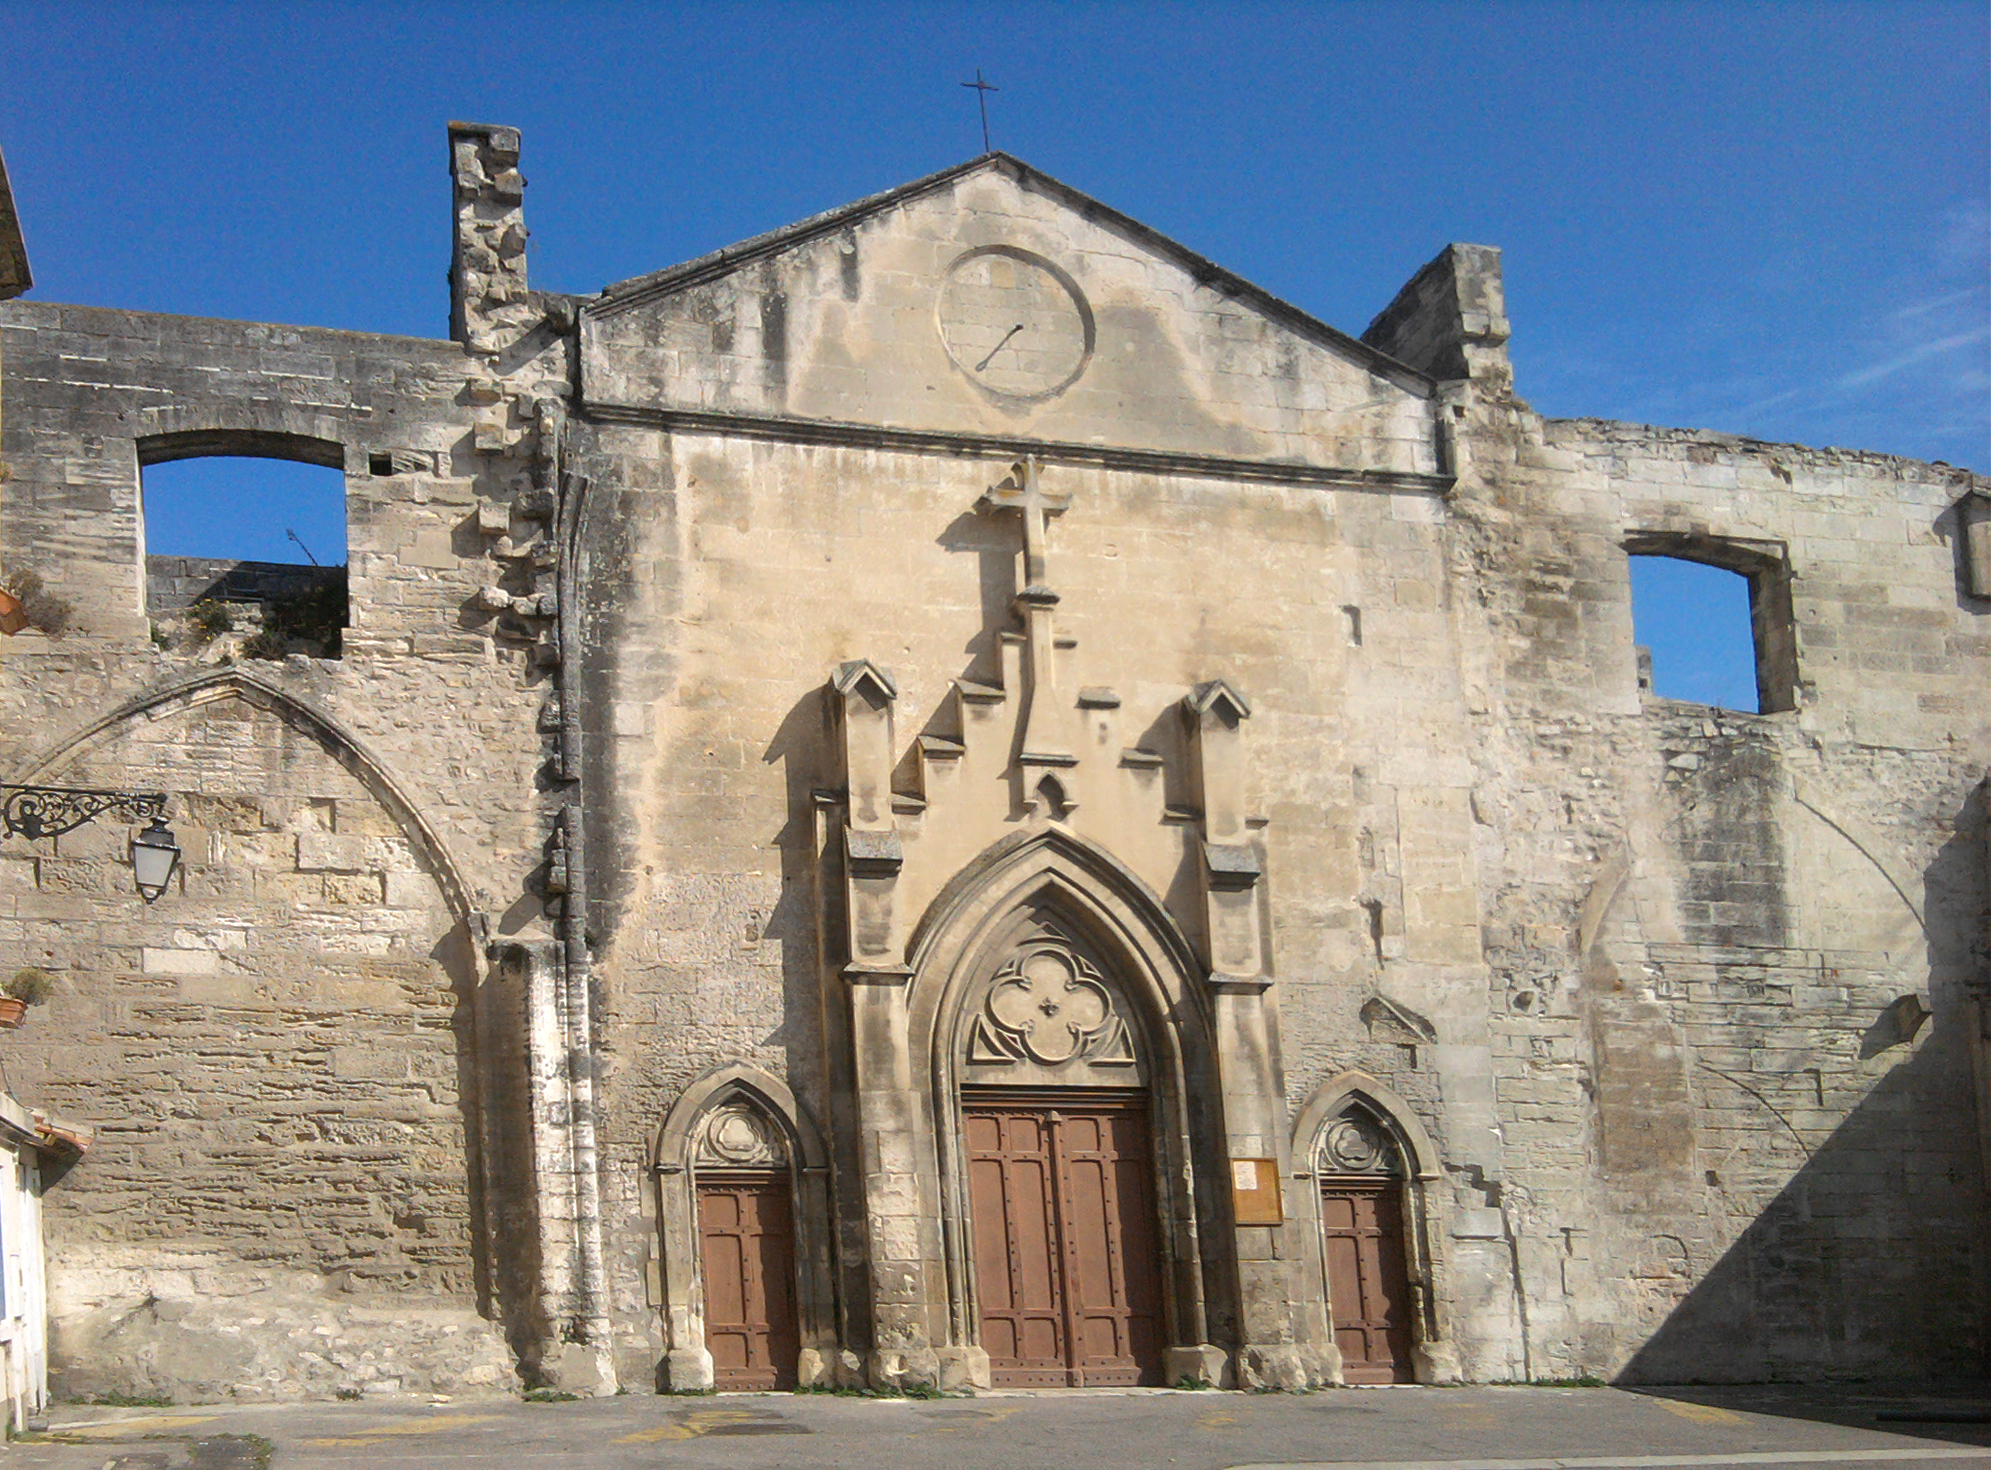 glise_St_Cesaire_Arles_by_Malost1.jpg